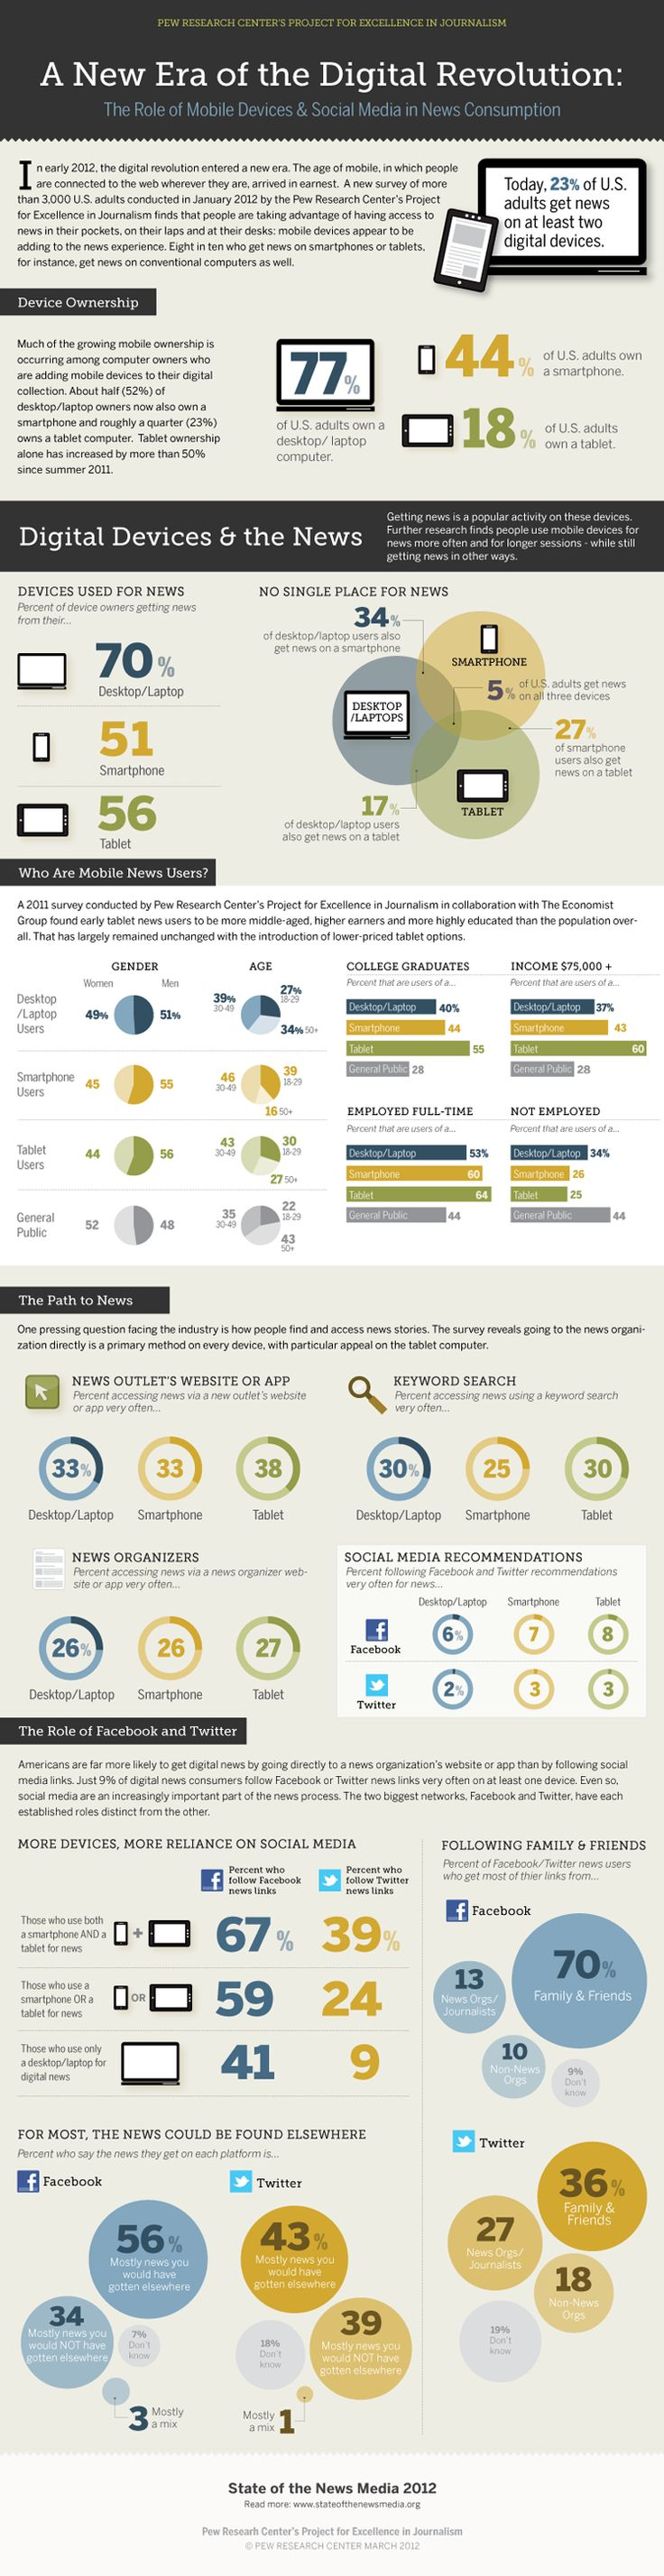 Pretty great infographic on where we find and follow news - Oddly enough, more respondents are getting news from combination of desktop + smartphone devices versus smartphone + tablet devices. I imagine if we paired this with growth stats on tablet devices, we could pinpoint when that metric will flip pretty quickly. Great stuff.